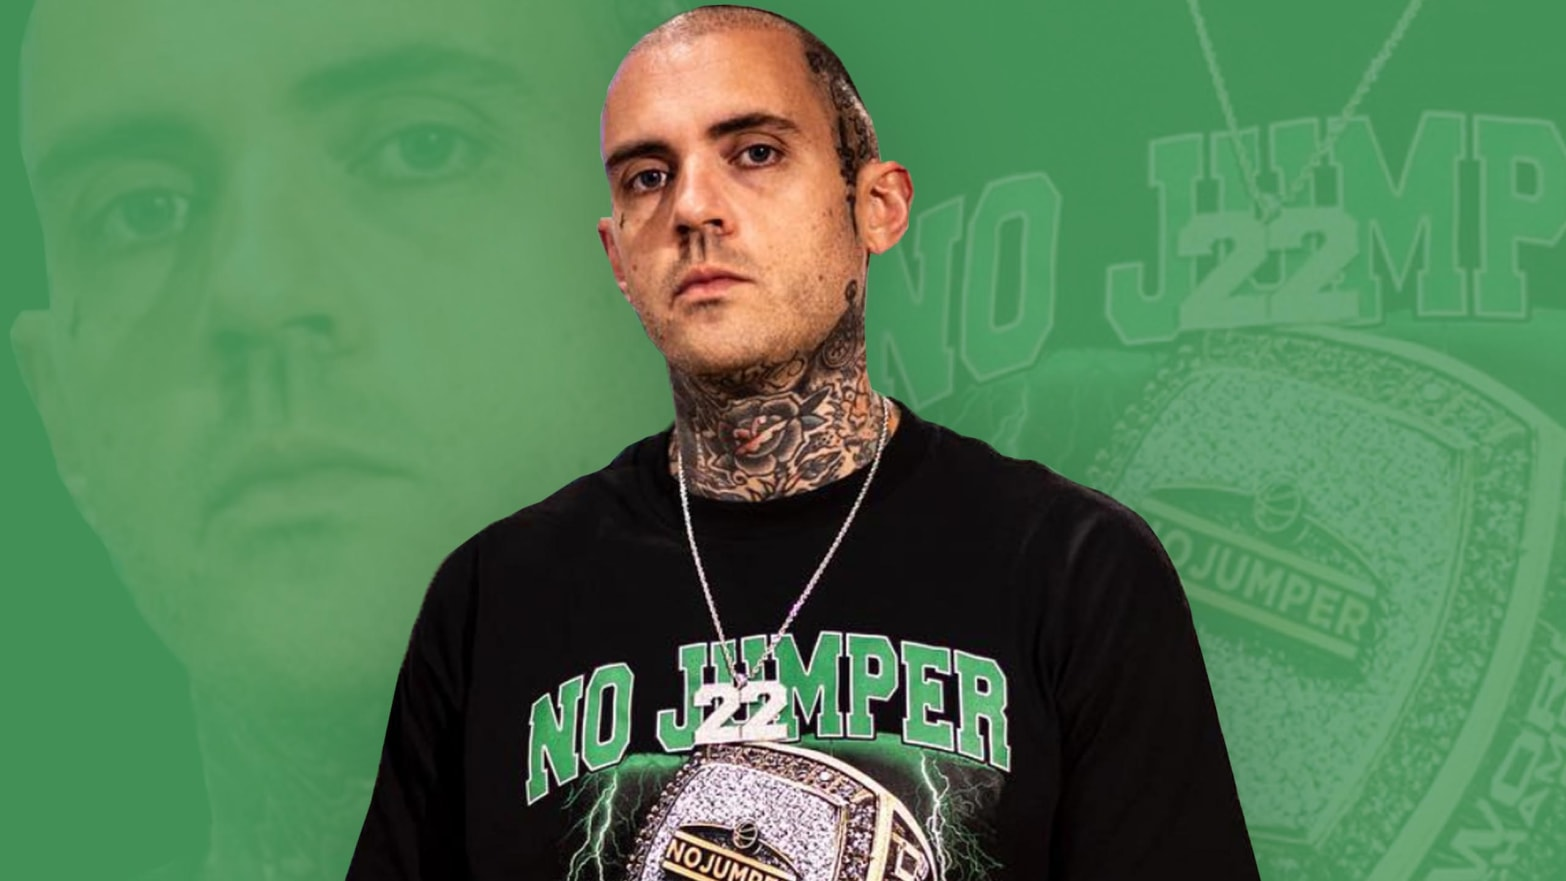 The 36-year old son of father (?) and mother(?) Adam22 in 2020 photo. Adam22 earned a million dollar salary - leaving the net worth at million in 2020